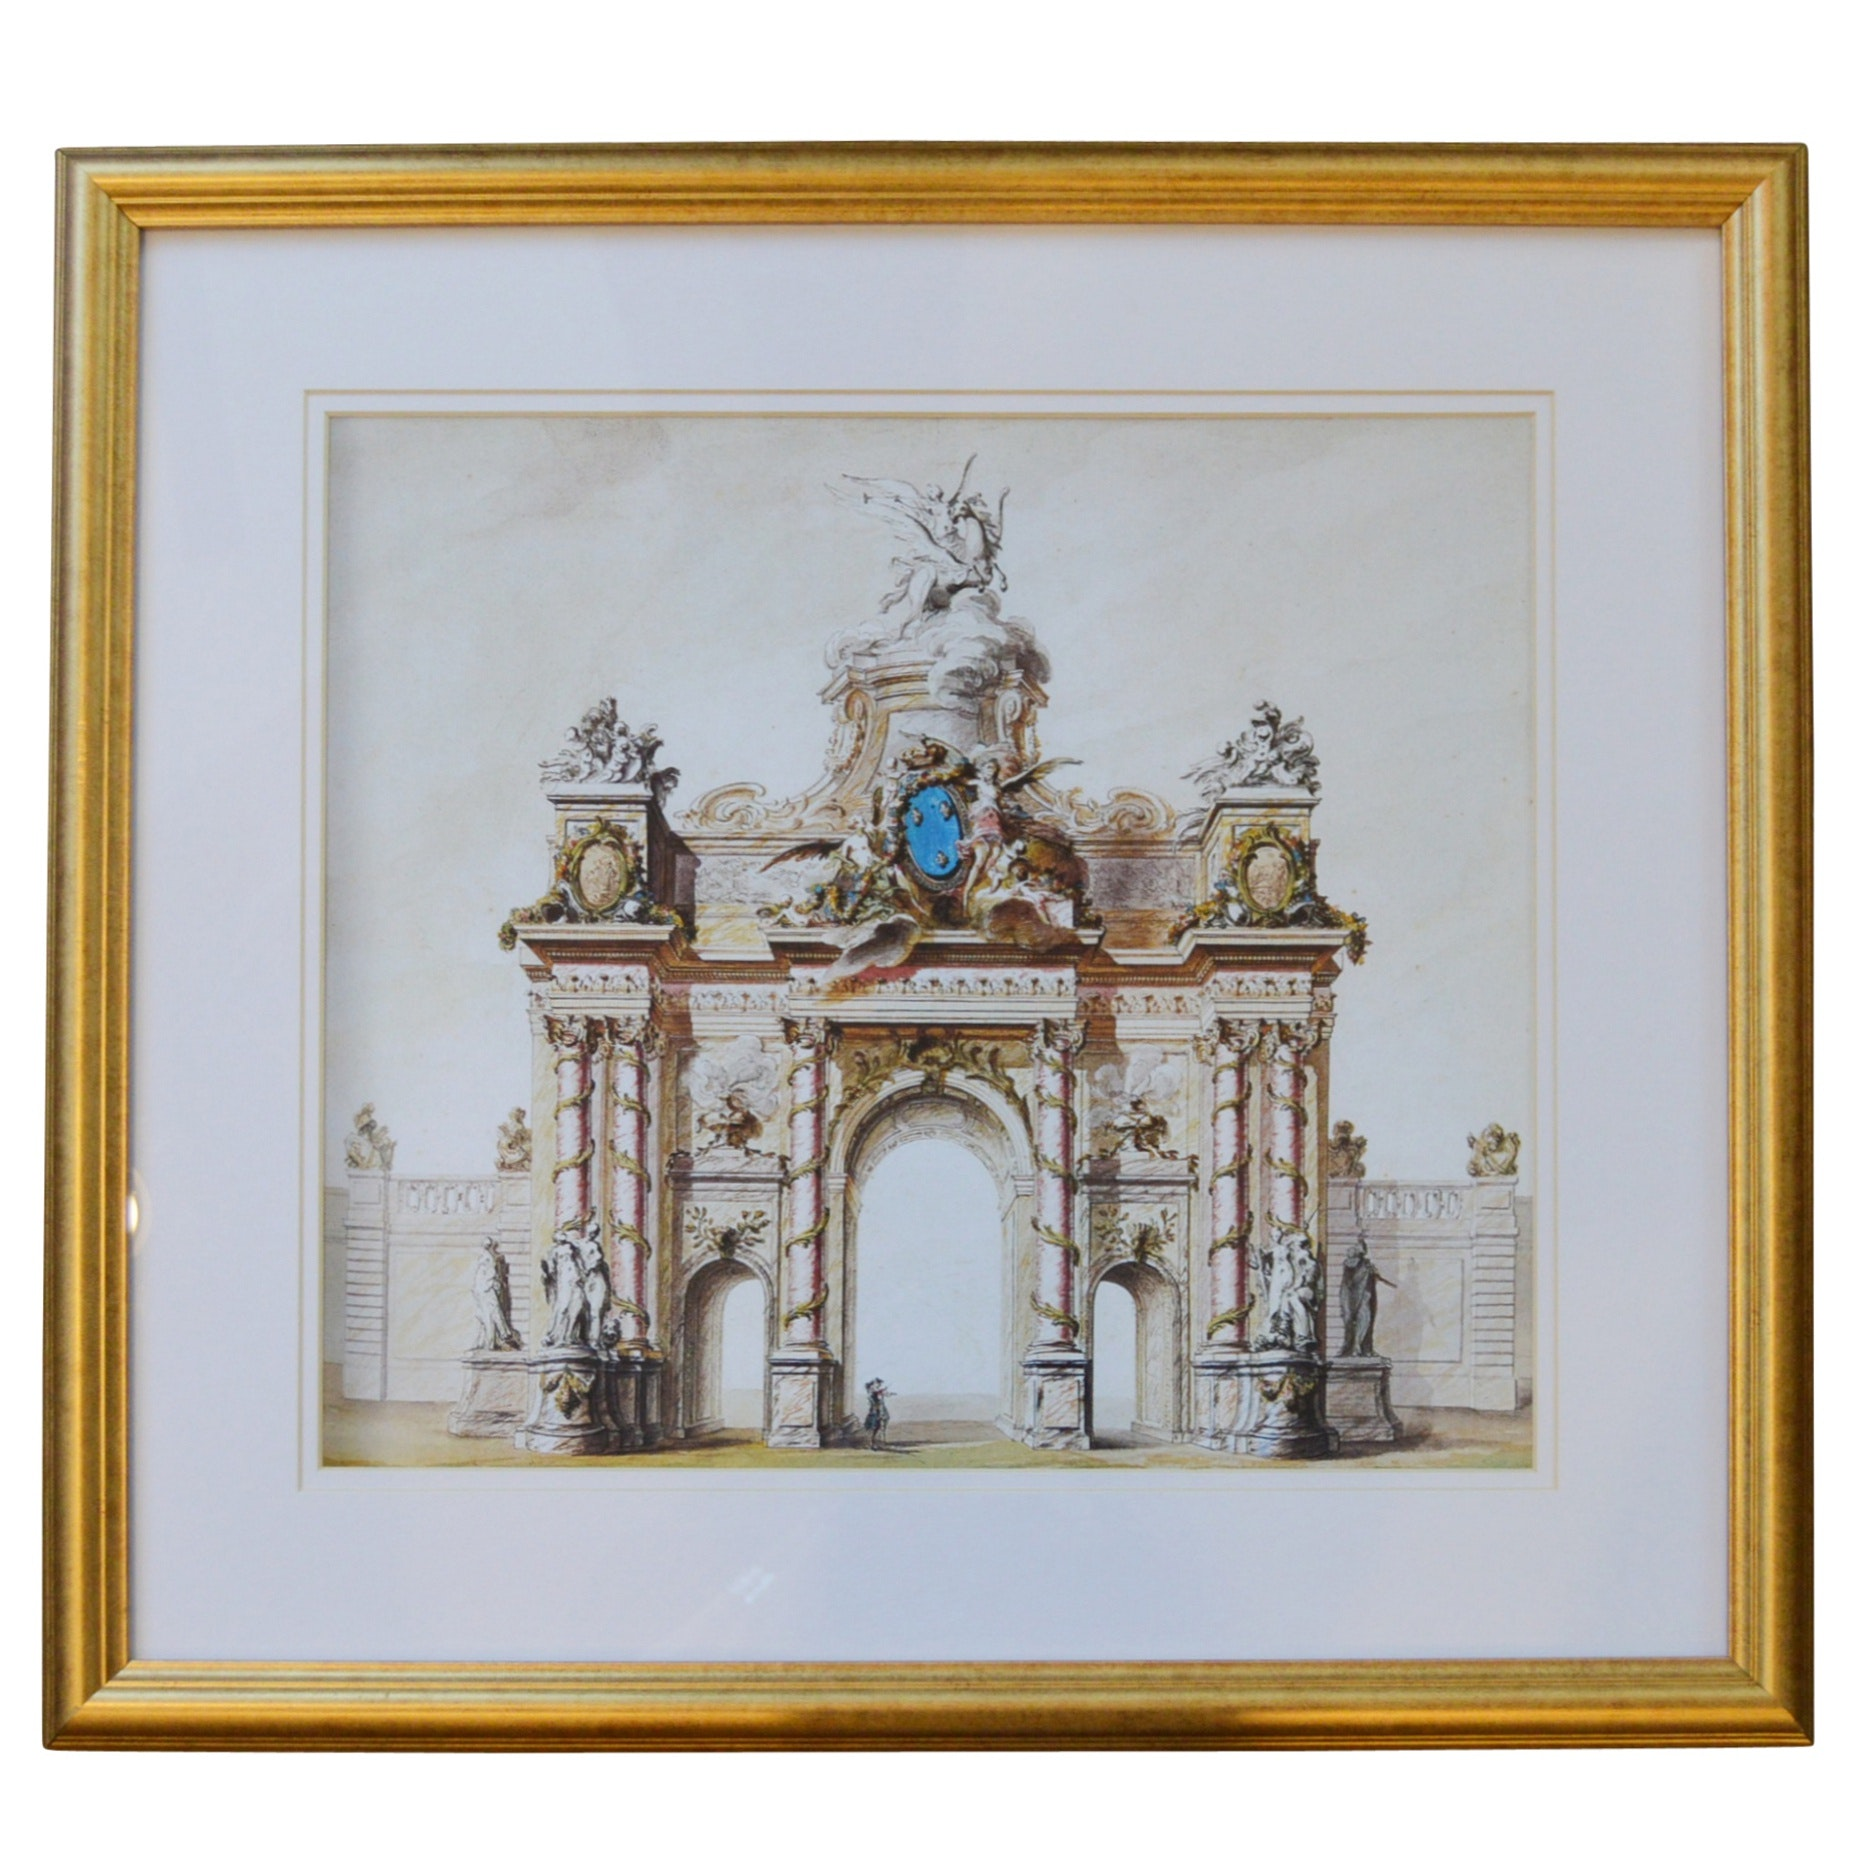 Framed Lithograph of a Classical Triumphal Arch